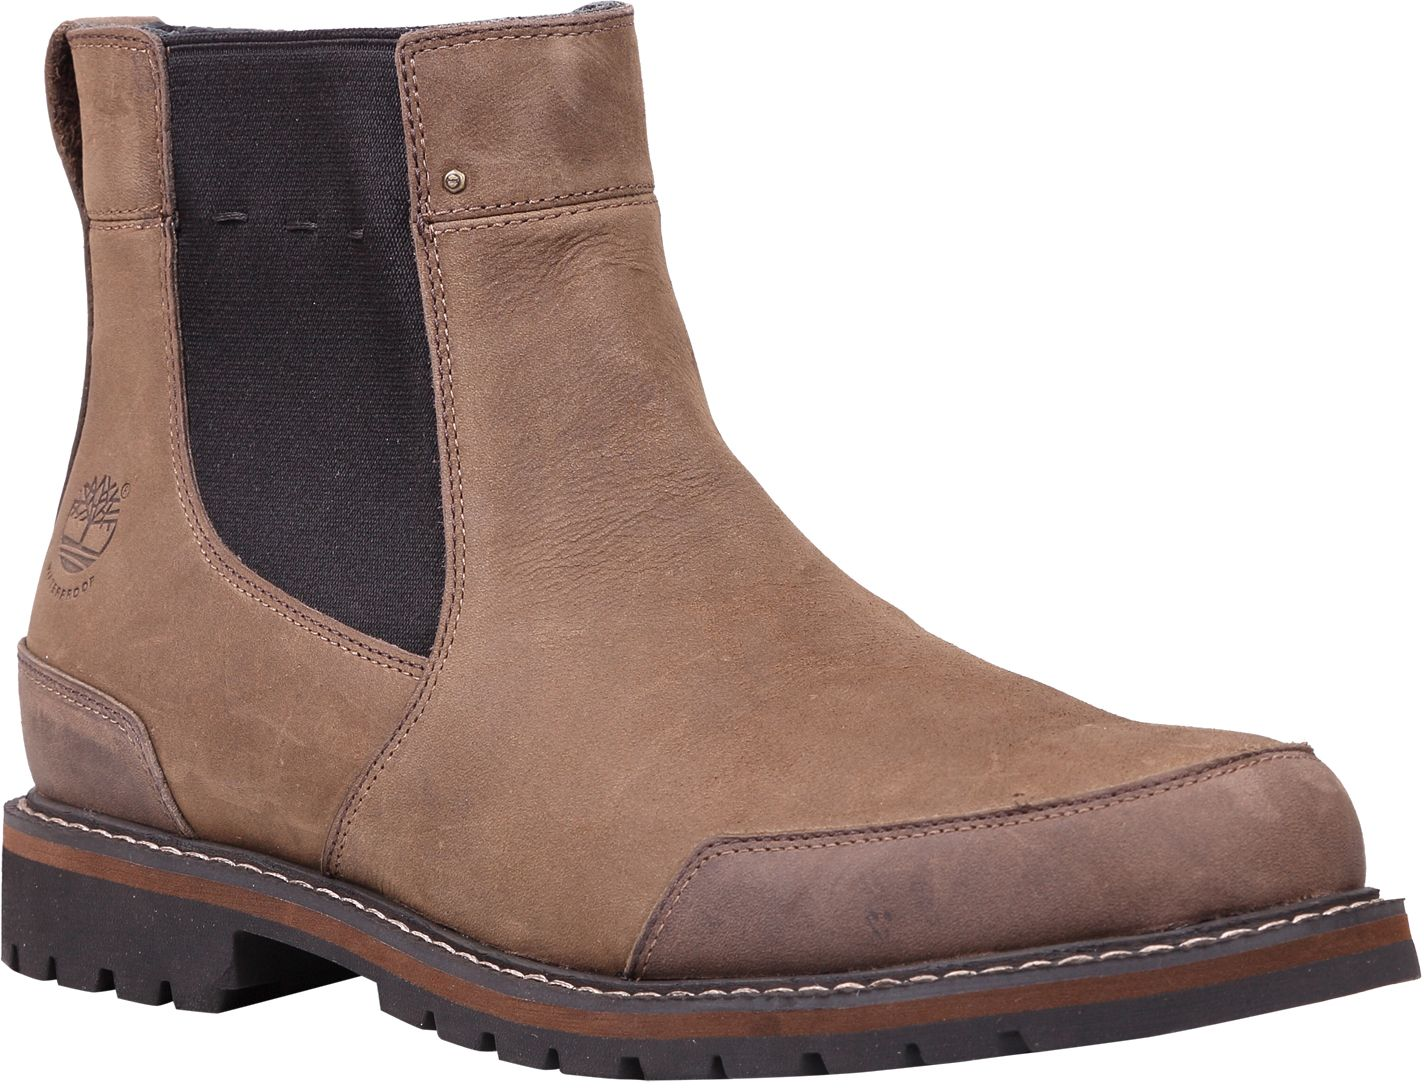 Earthkeepers Chestnut Ridge Waterproof, Mens Chelsea Boots Timberland